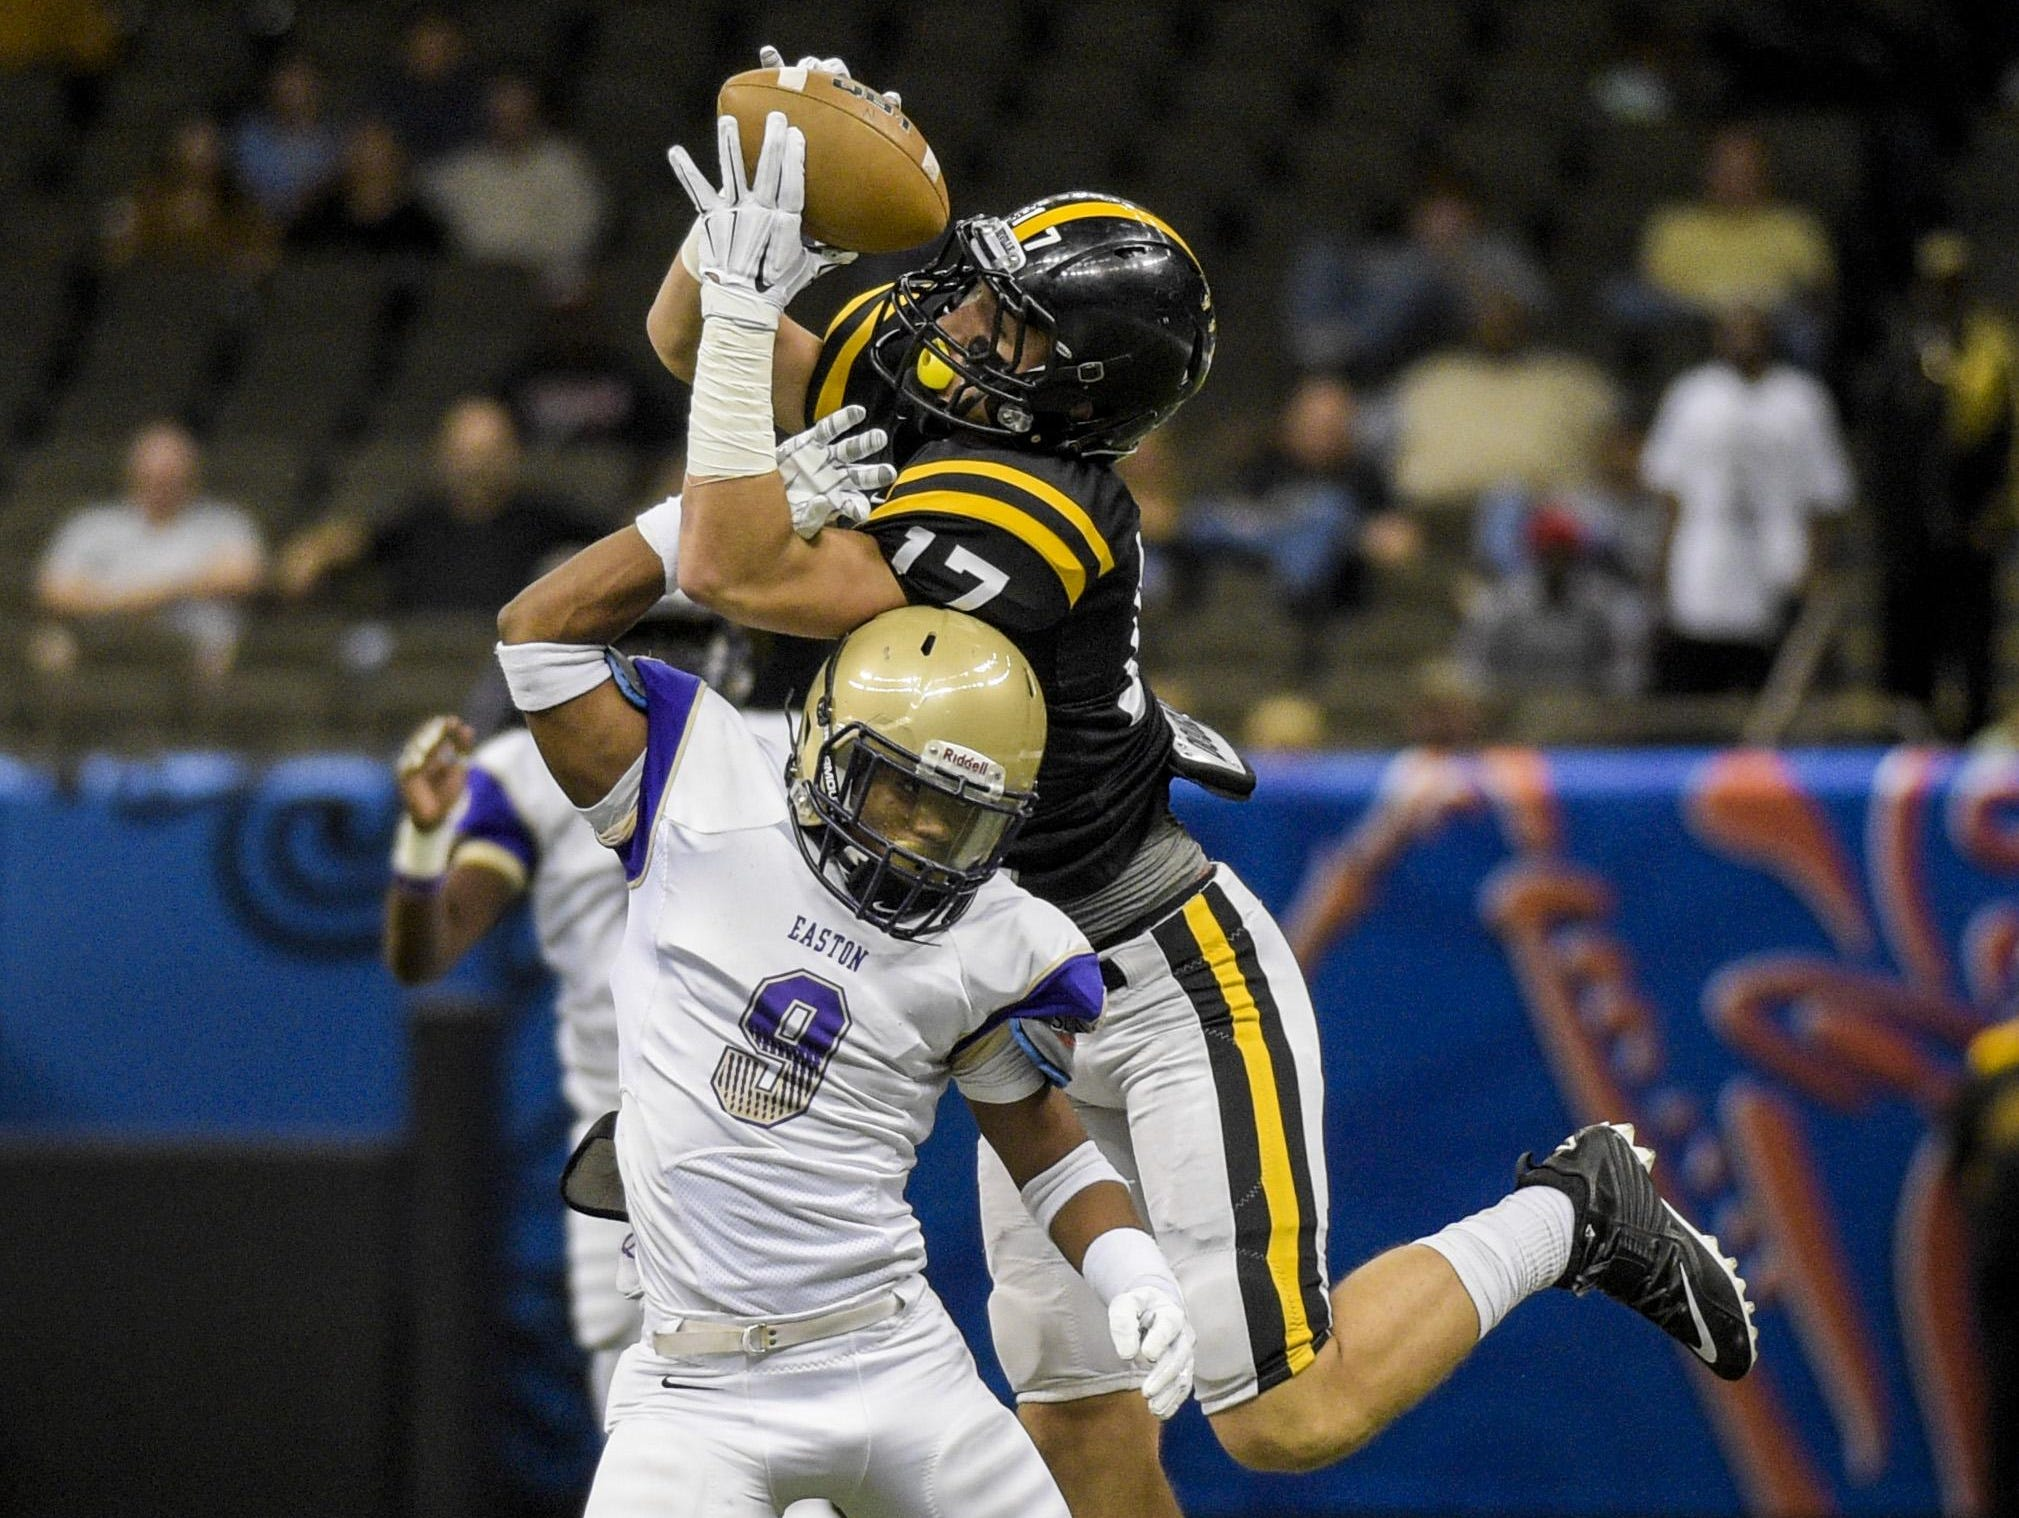 Neville wide receiver Chris Fuller (17) makes a catch over a Warren Easton defender during the 2014 Class 4A state championship game.